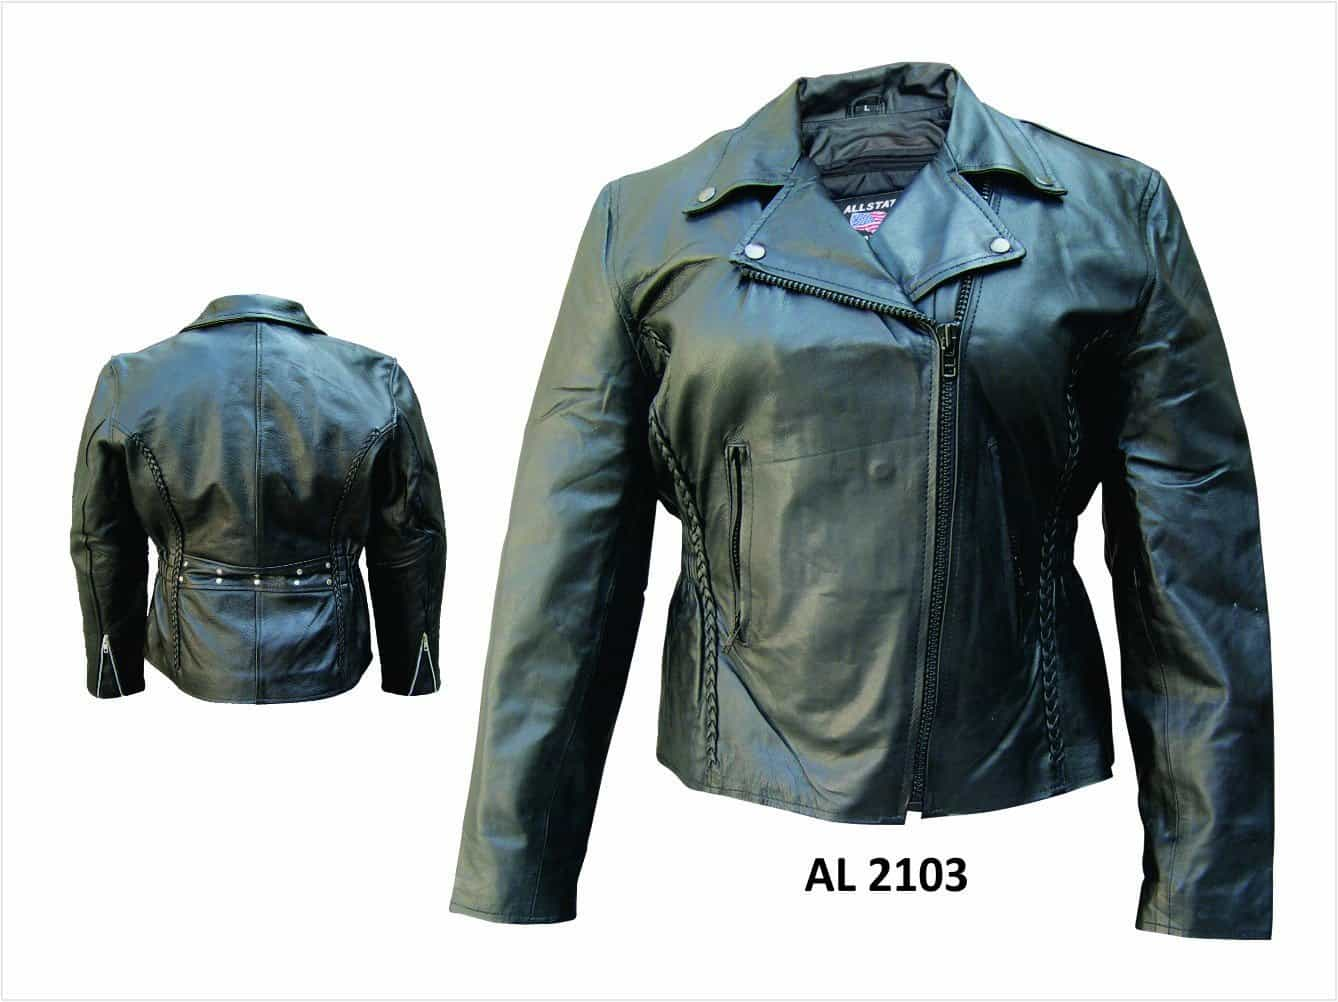 bedinhome - AL2103 Ladies Motorcycle Lambskin Leather Vertical Braiding on front & back Jacket With Black Hardware - All State Leather - Ladies Leather Jacket